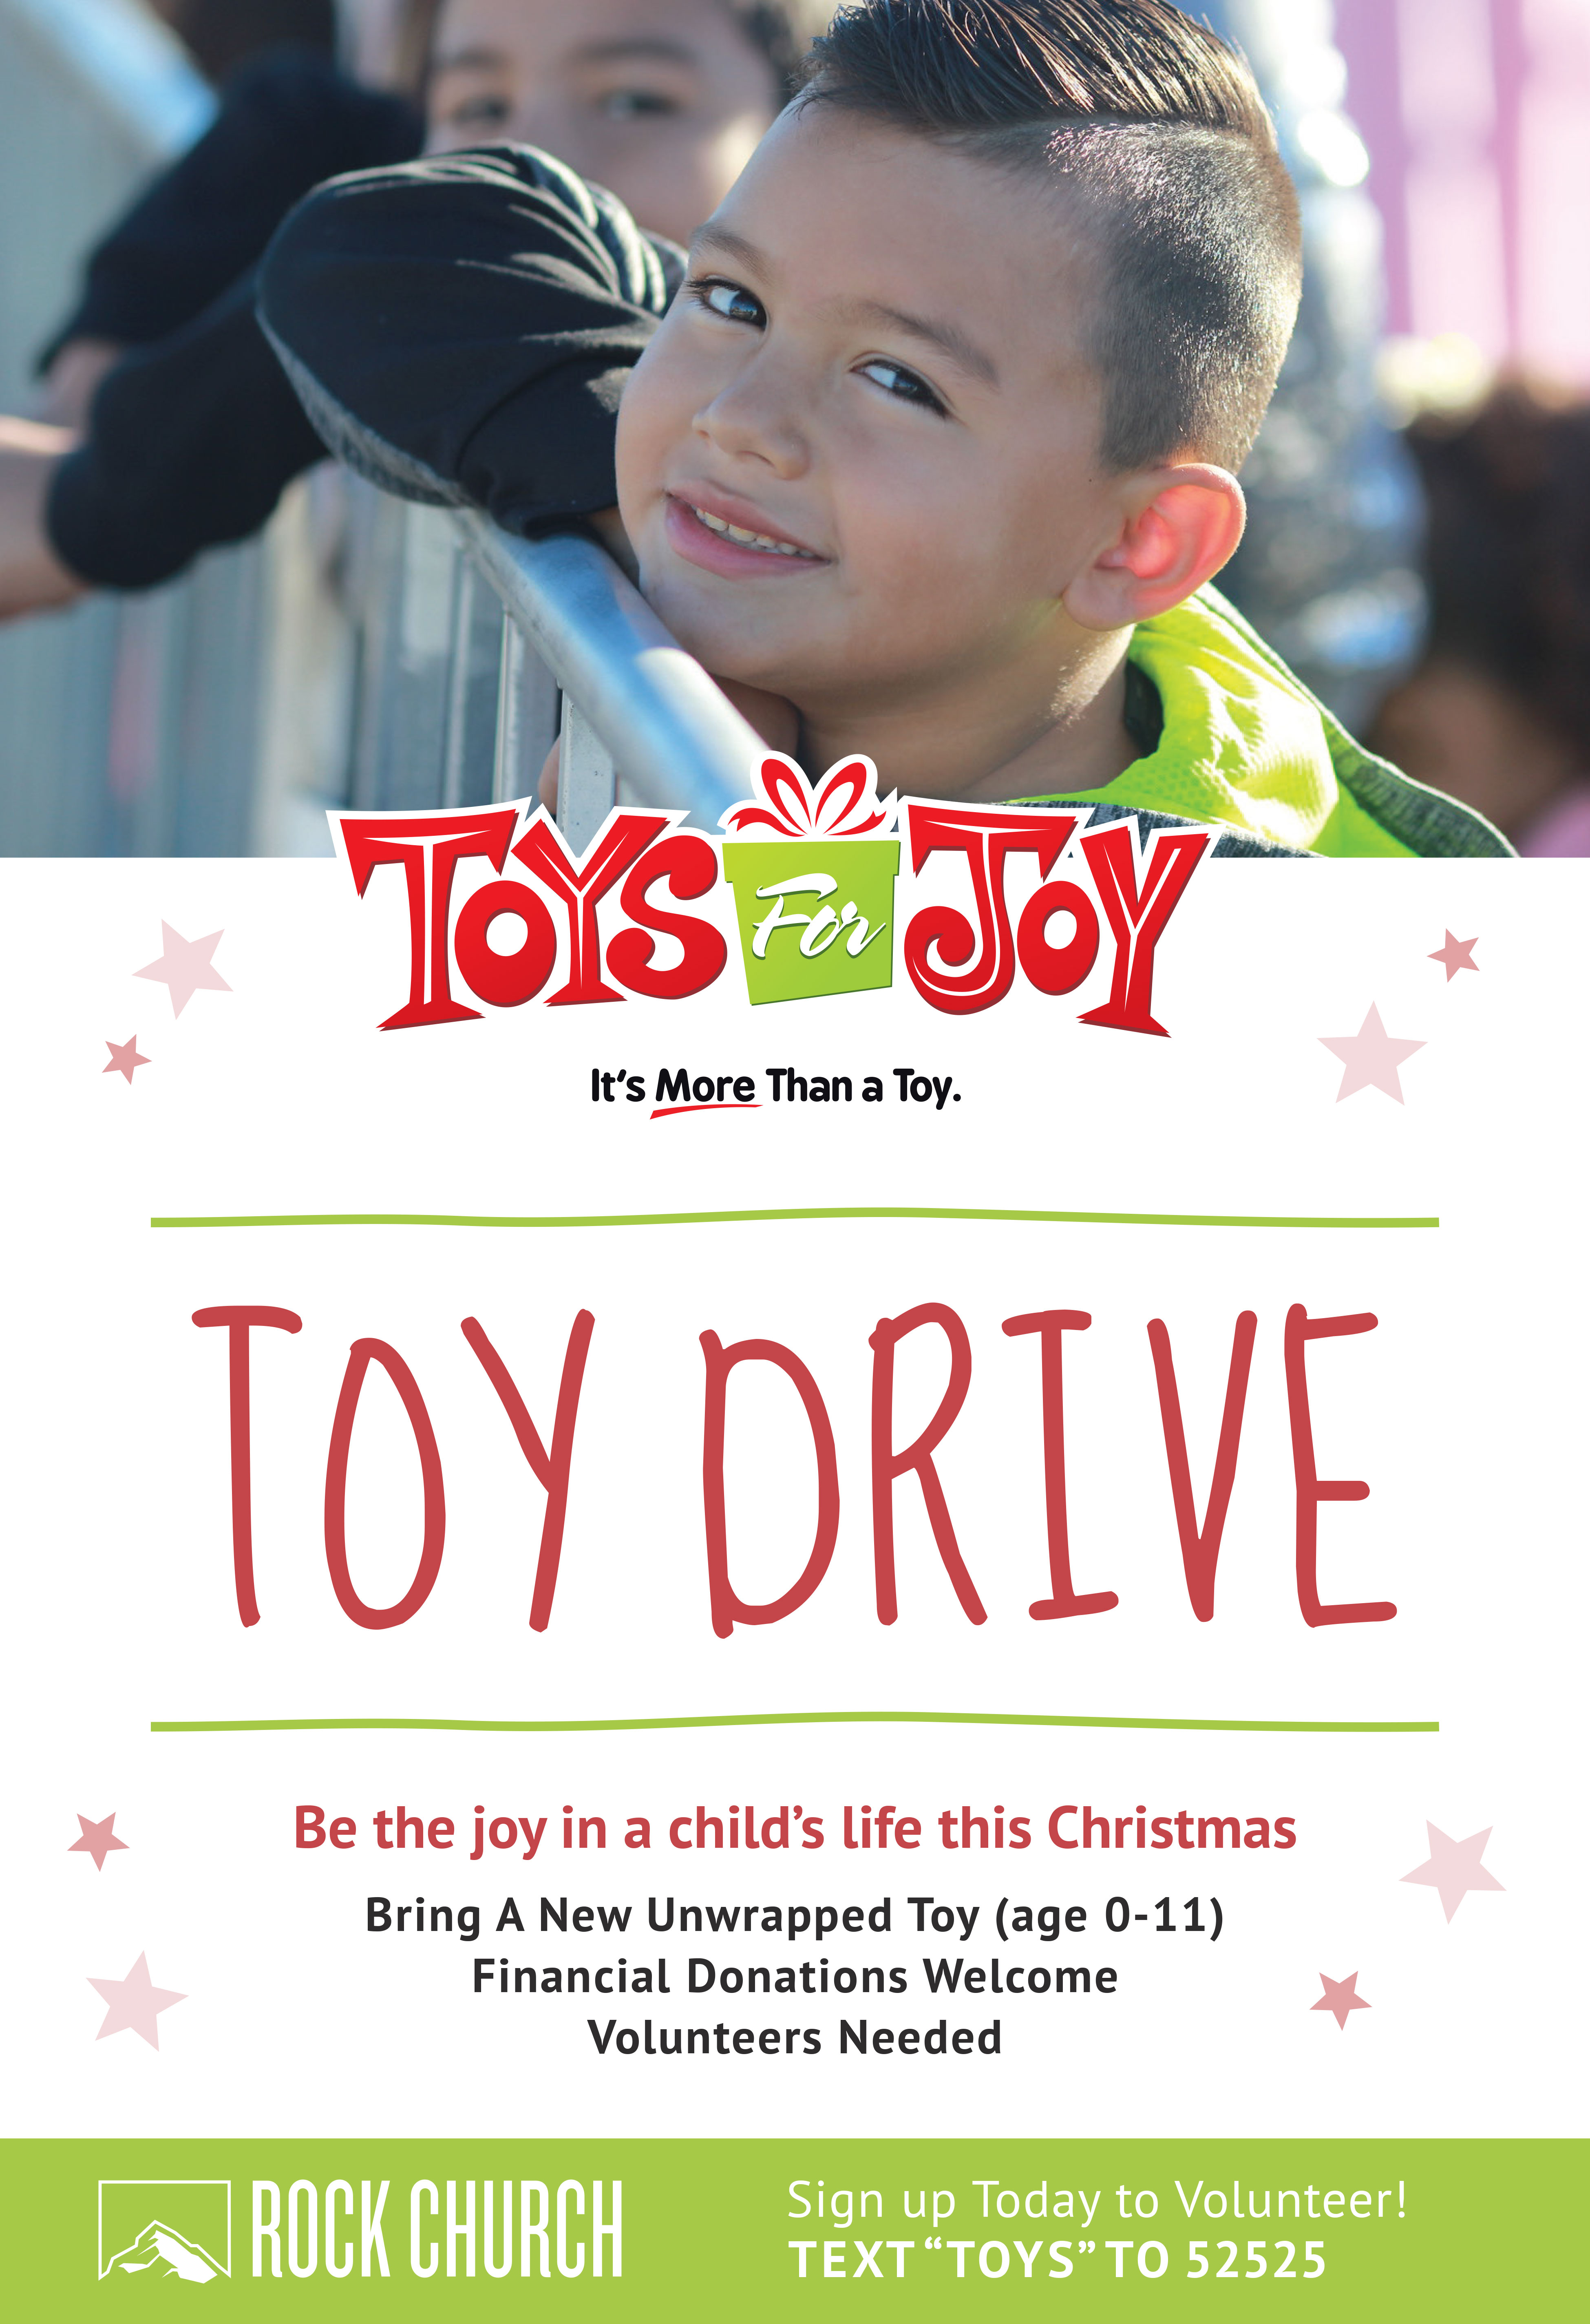 Toys for Joy 2019 Toy Drive